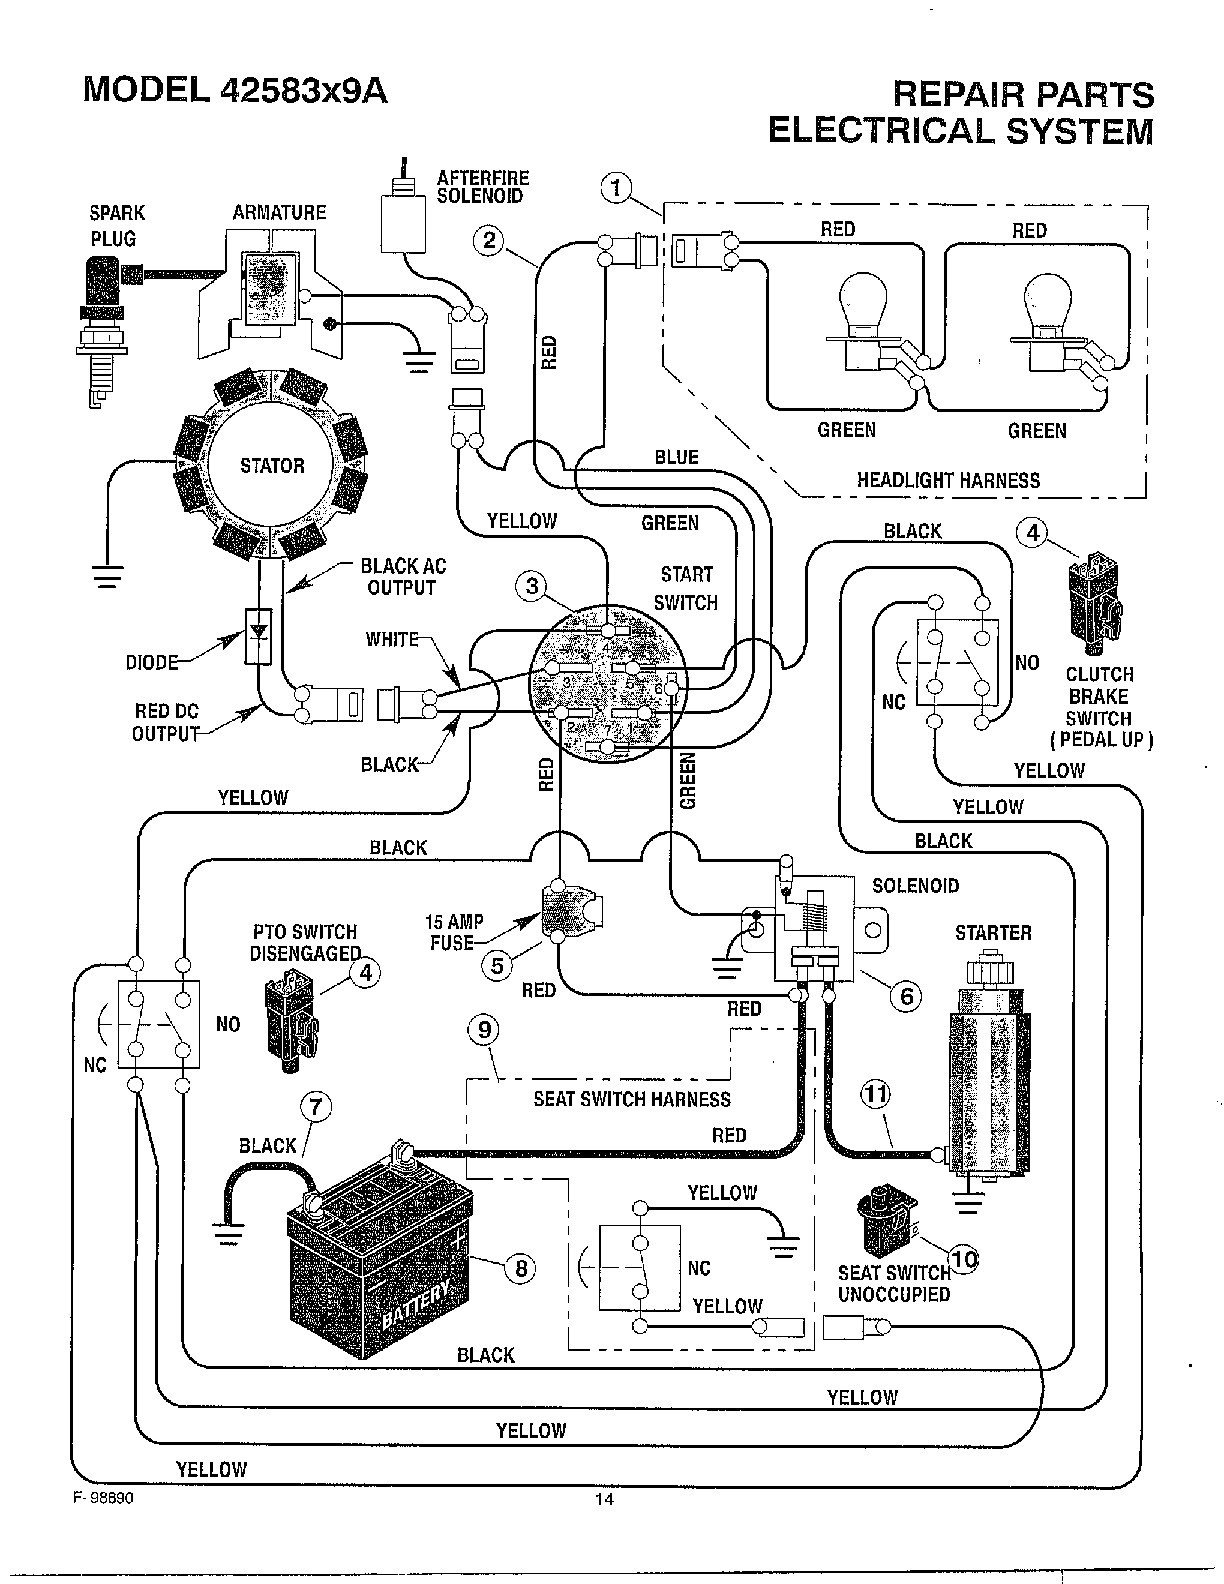 murray 12hp ignition switch wiring diagram wiring diagram mtd ignition switch wiring diagram murray 10 30 wiring diagram